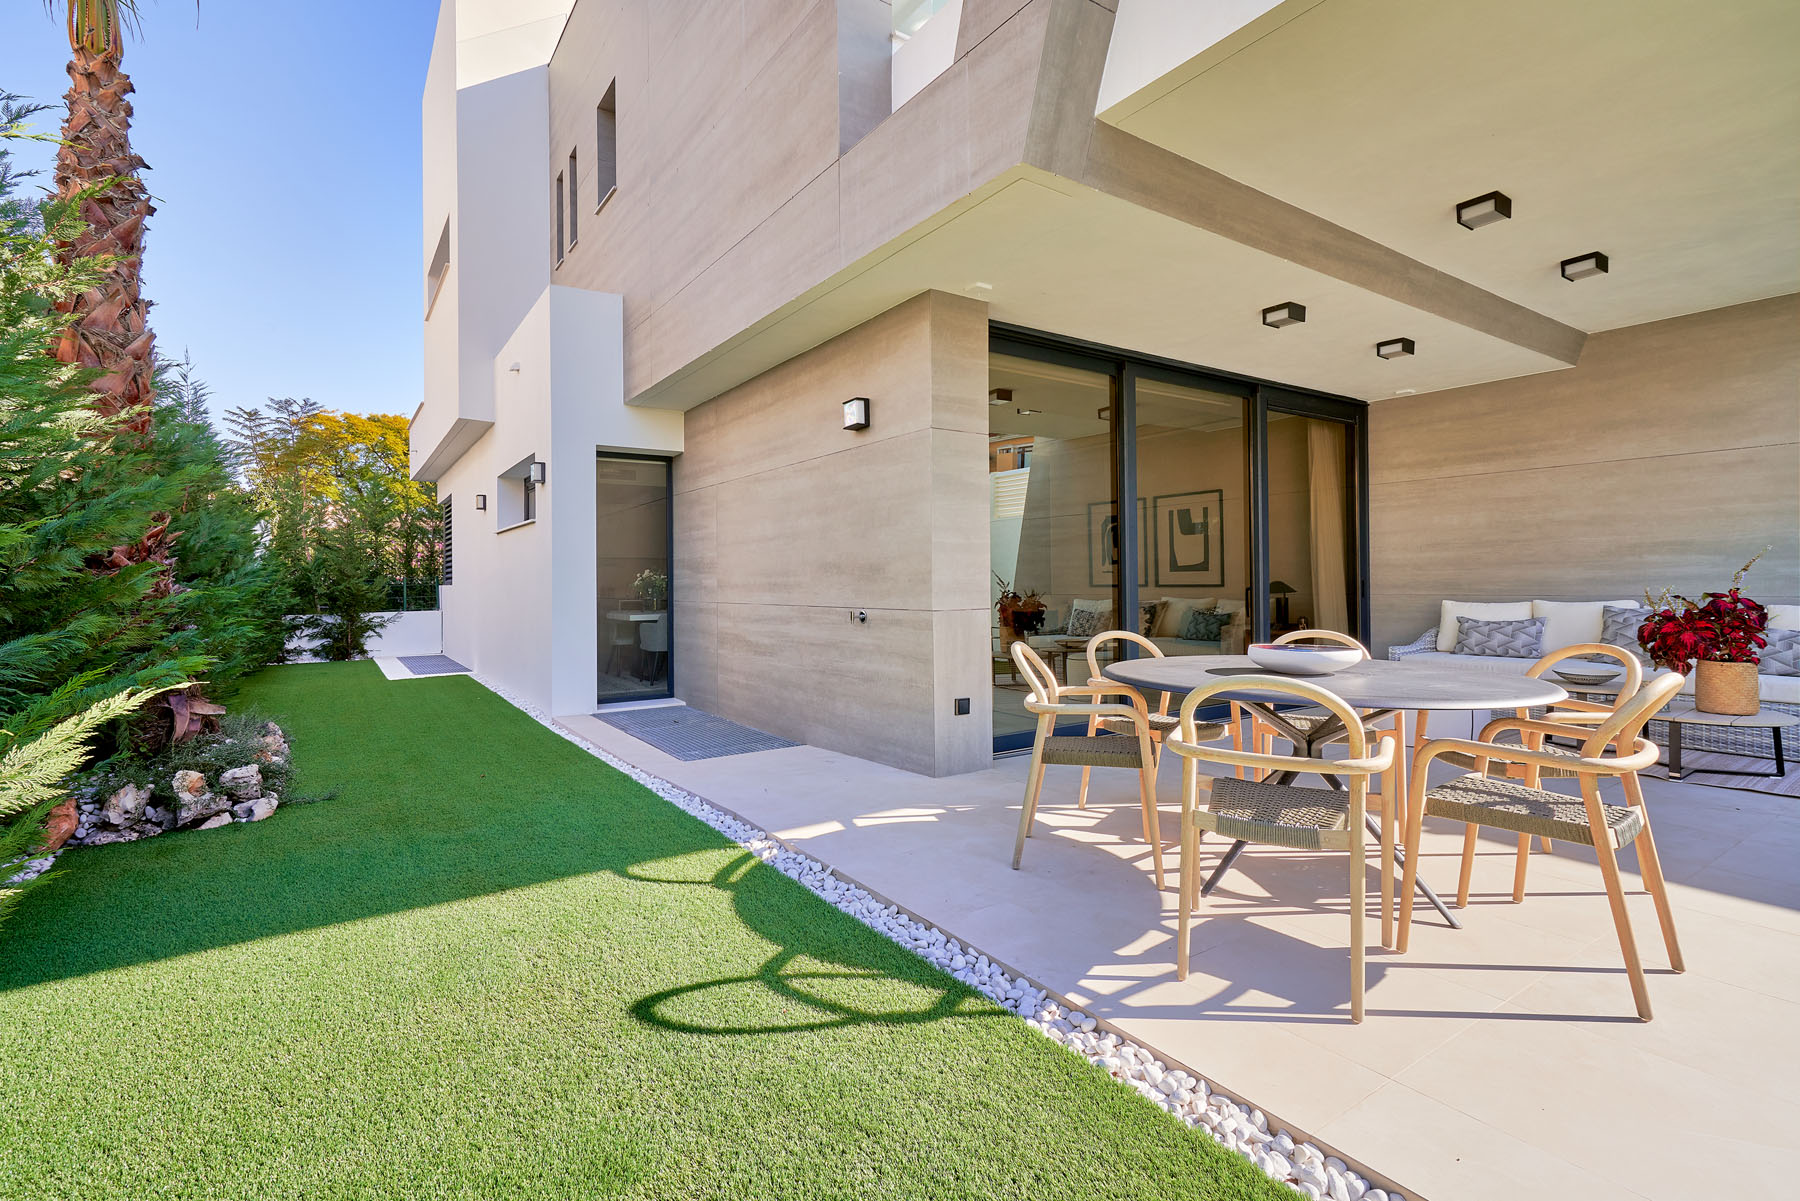 Stunning ultra modern 4 bedroom villa for sale walking distance from Puerto Banus.